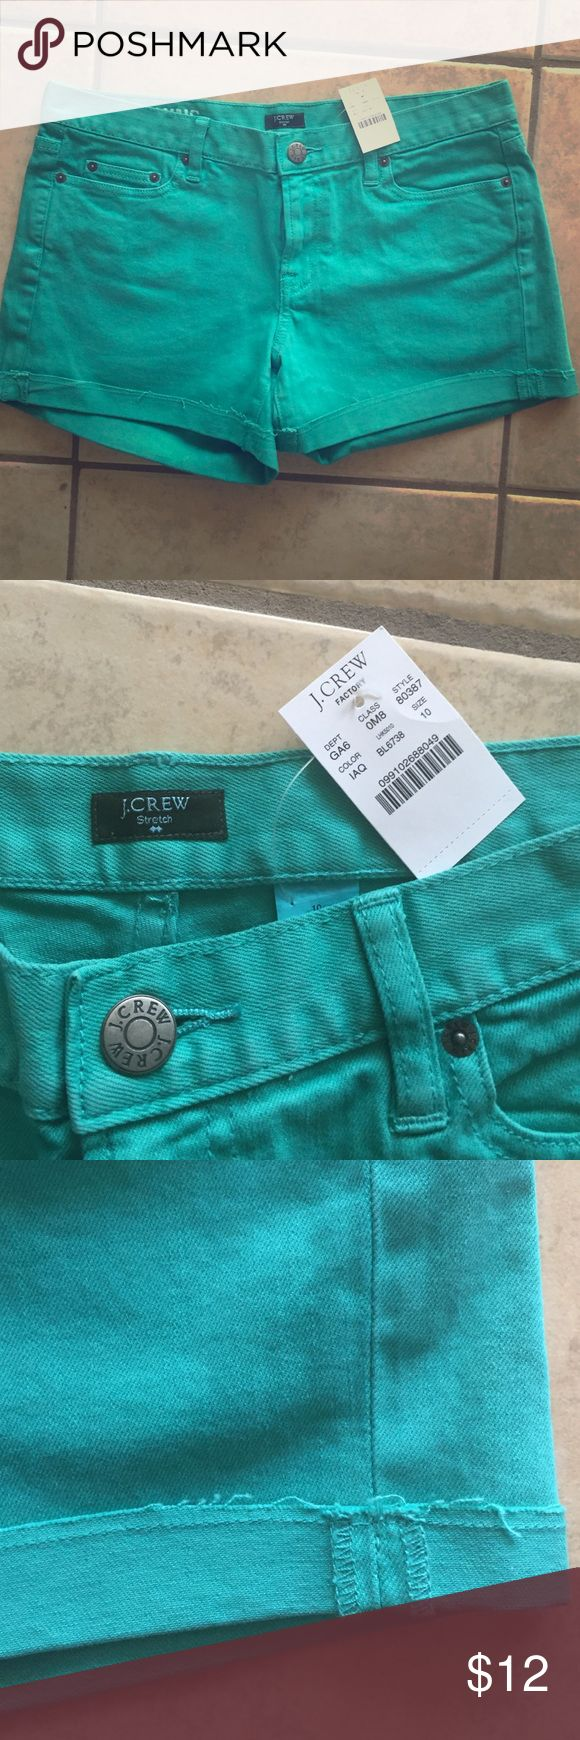 J Crew Turquoise Shorts Brand new summery turquoise shorts from J. Crew! Tags still on and never worn. Stretchy. Cutoff style but still nice and clean hems. Size 10. J. Crew Shorts Jean Shorts